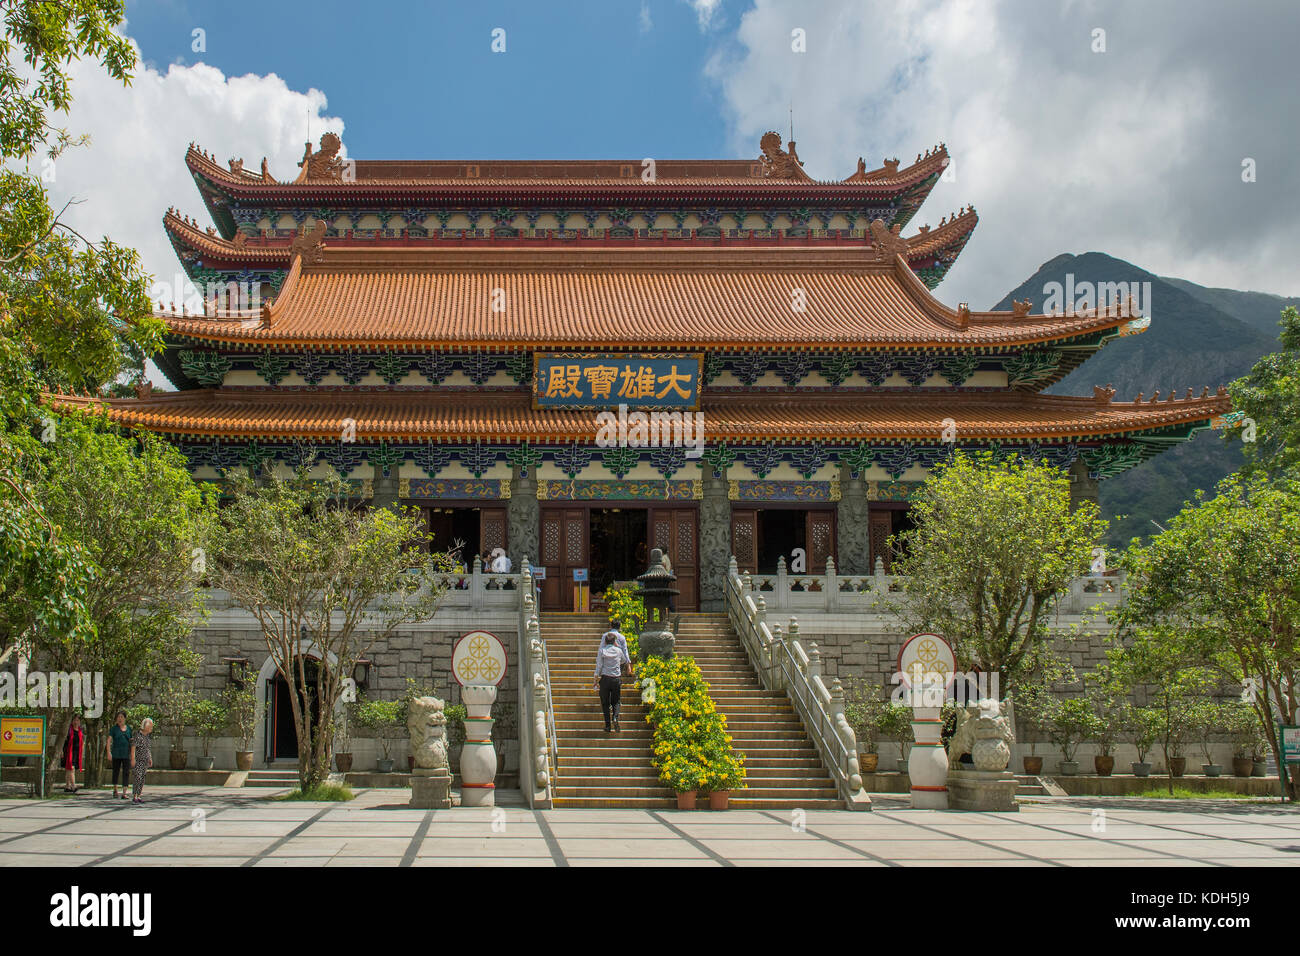 Second Hall, Po Lin Monastery, Lantau Island, Hong Kong, China Stock Photo